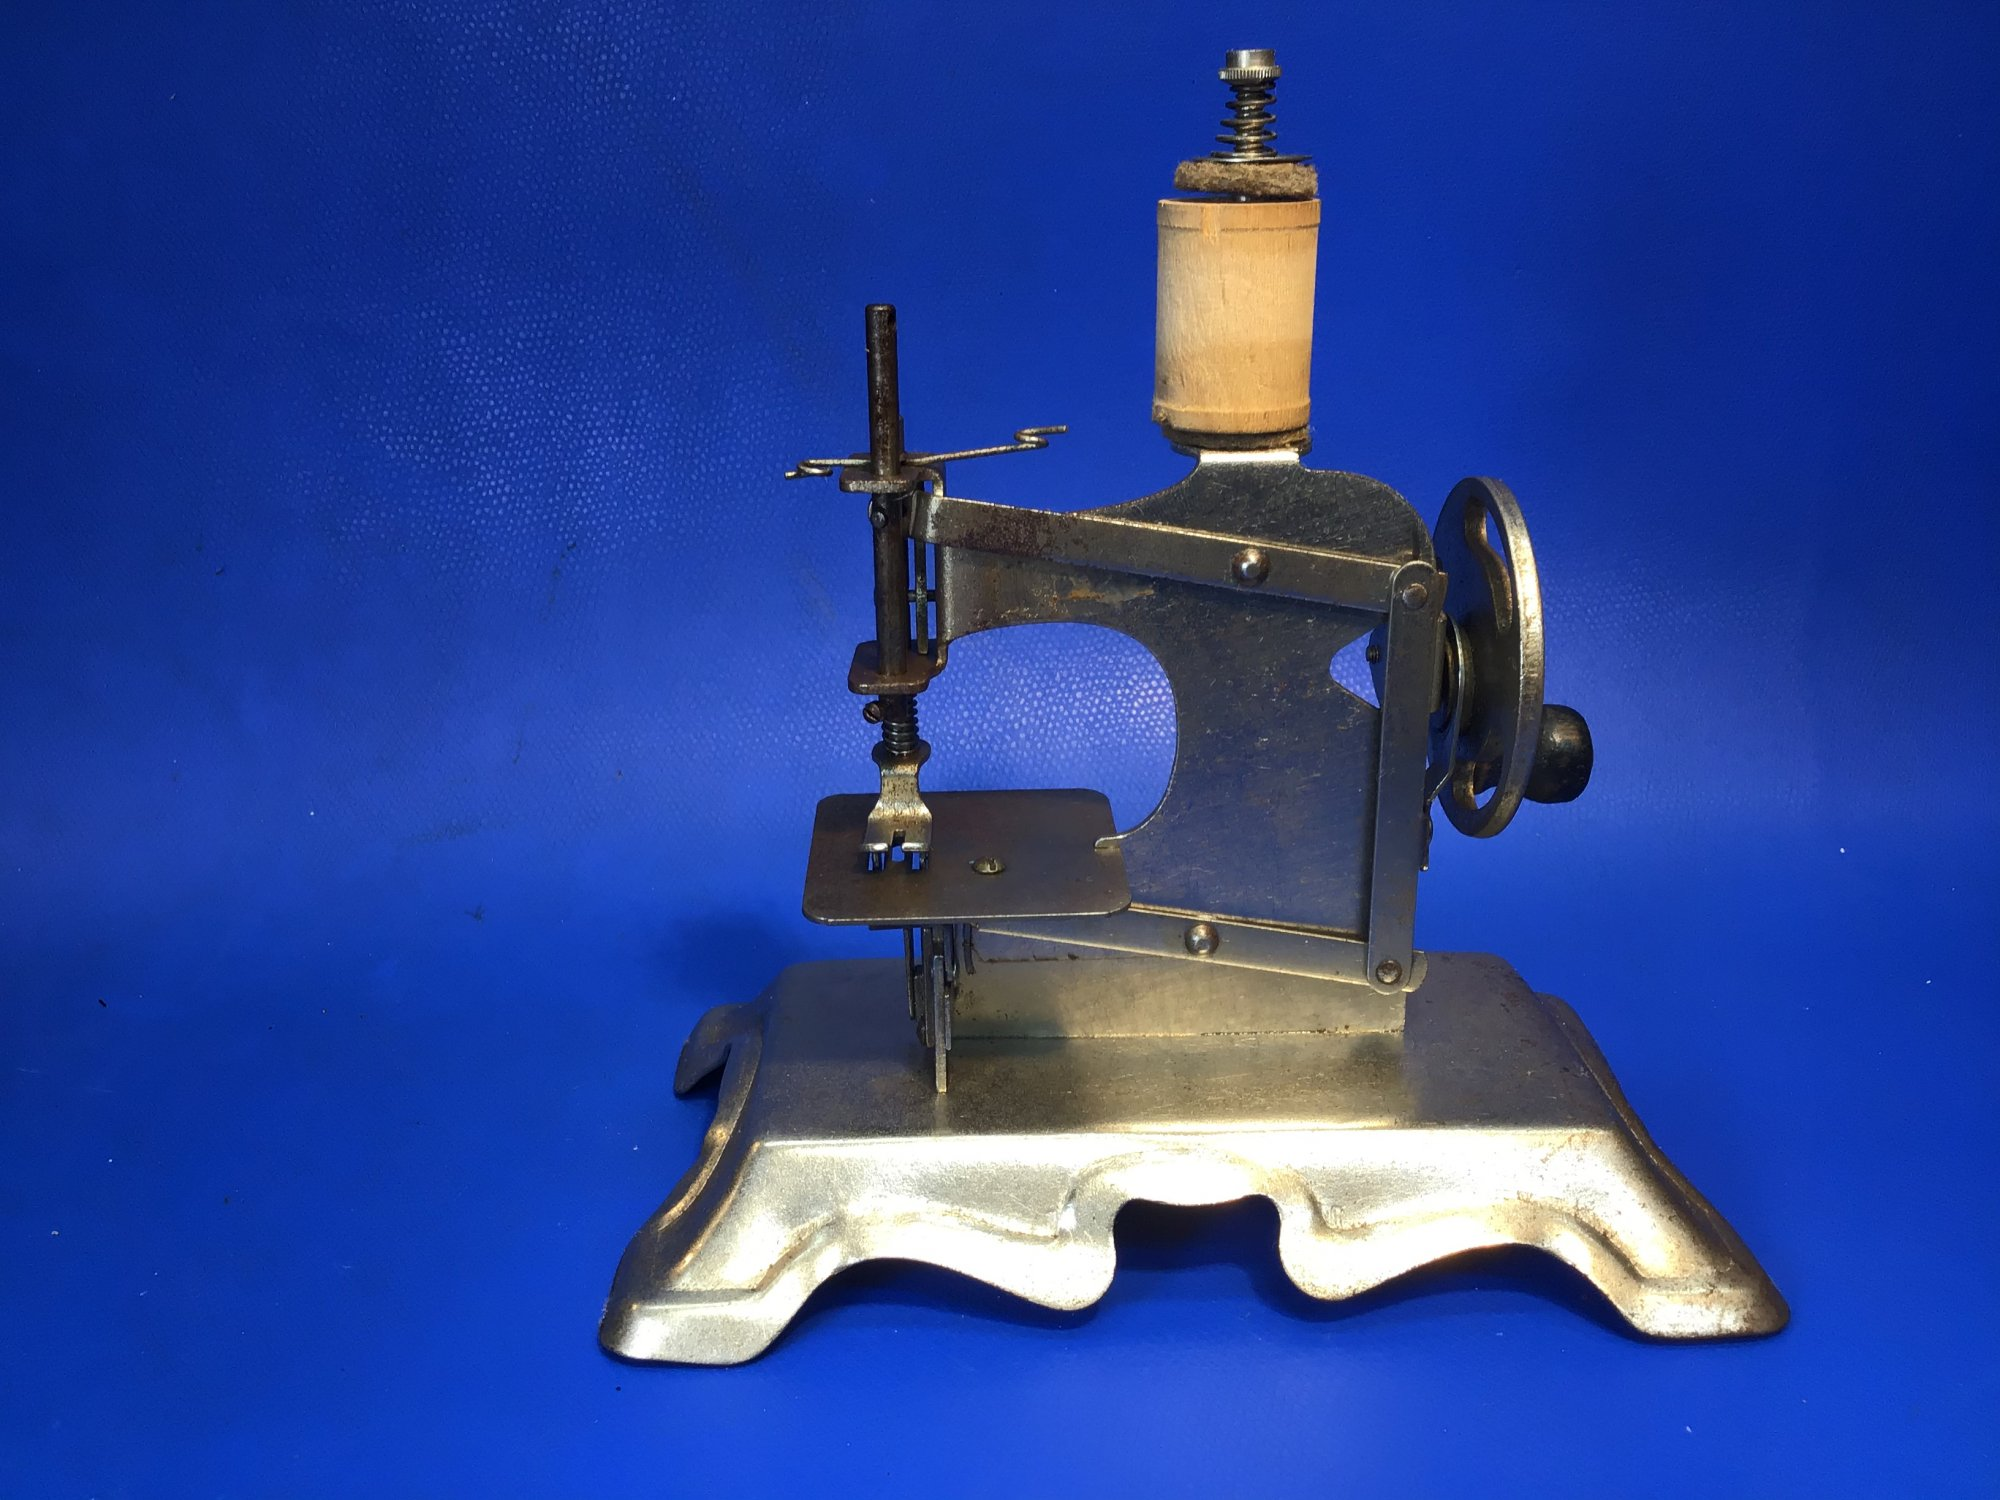 Unique Unpainted Toy Sewing Machines